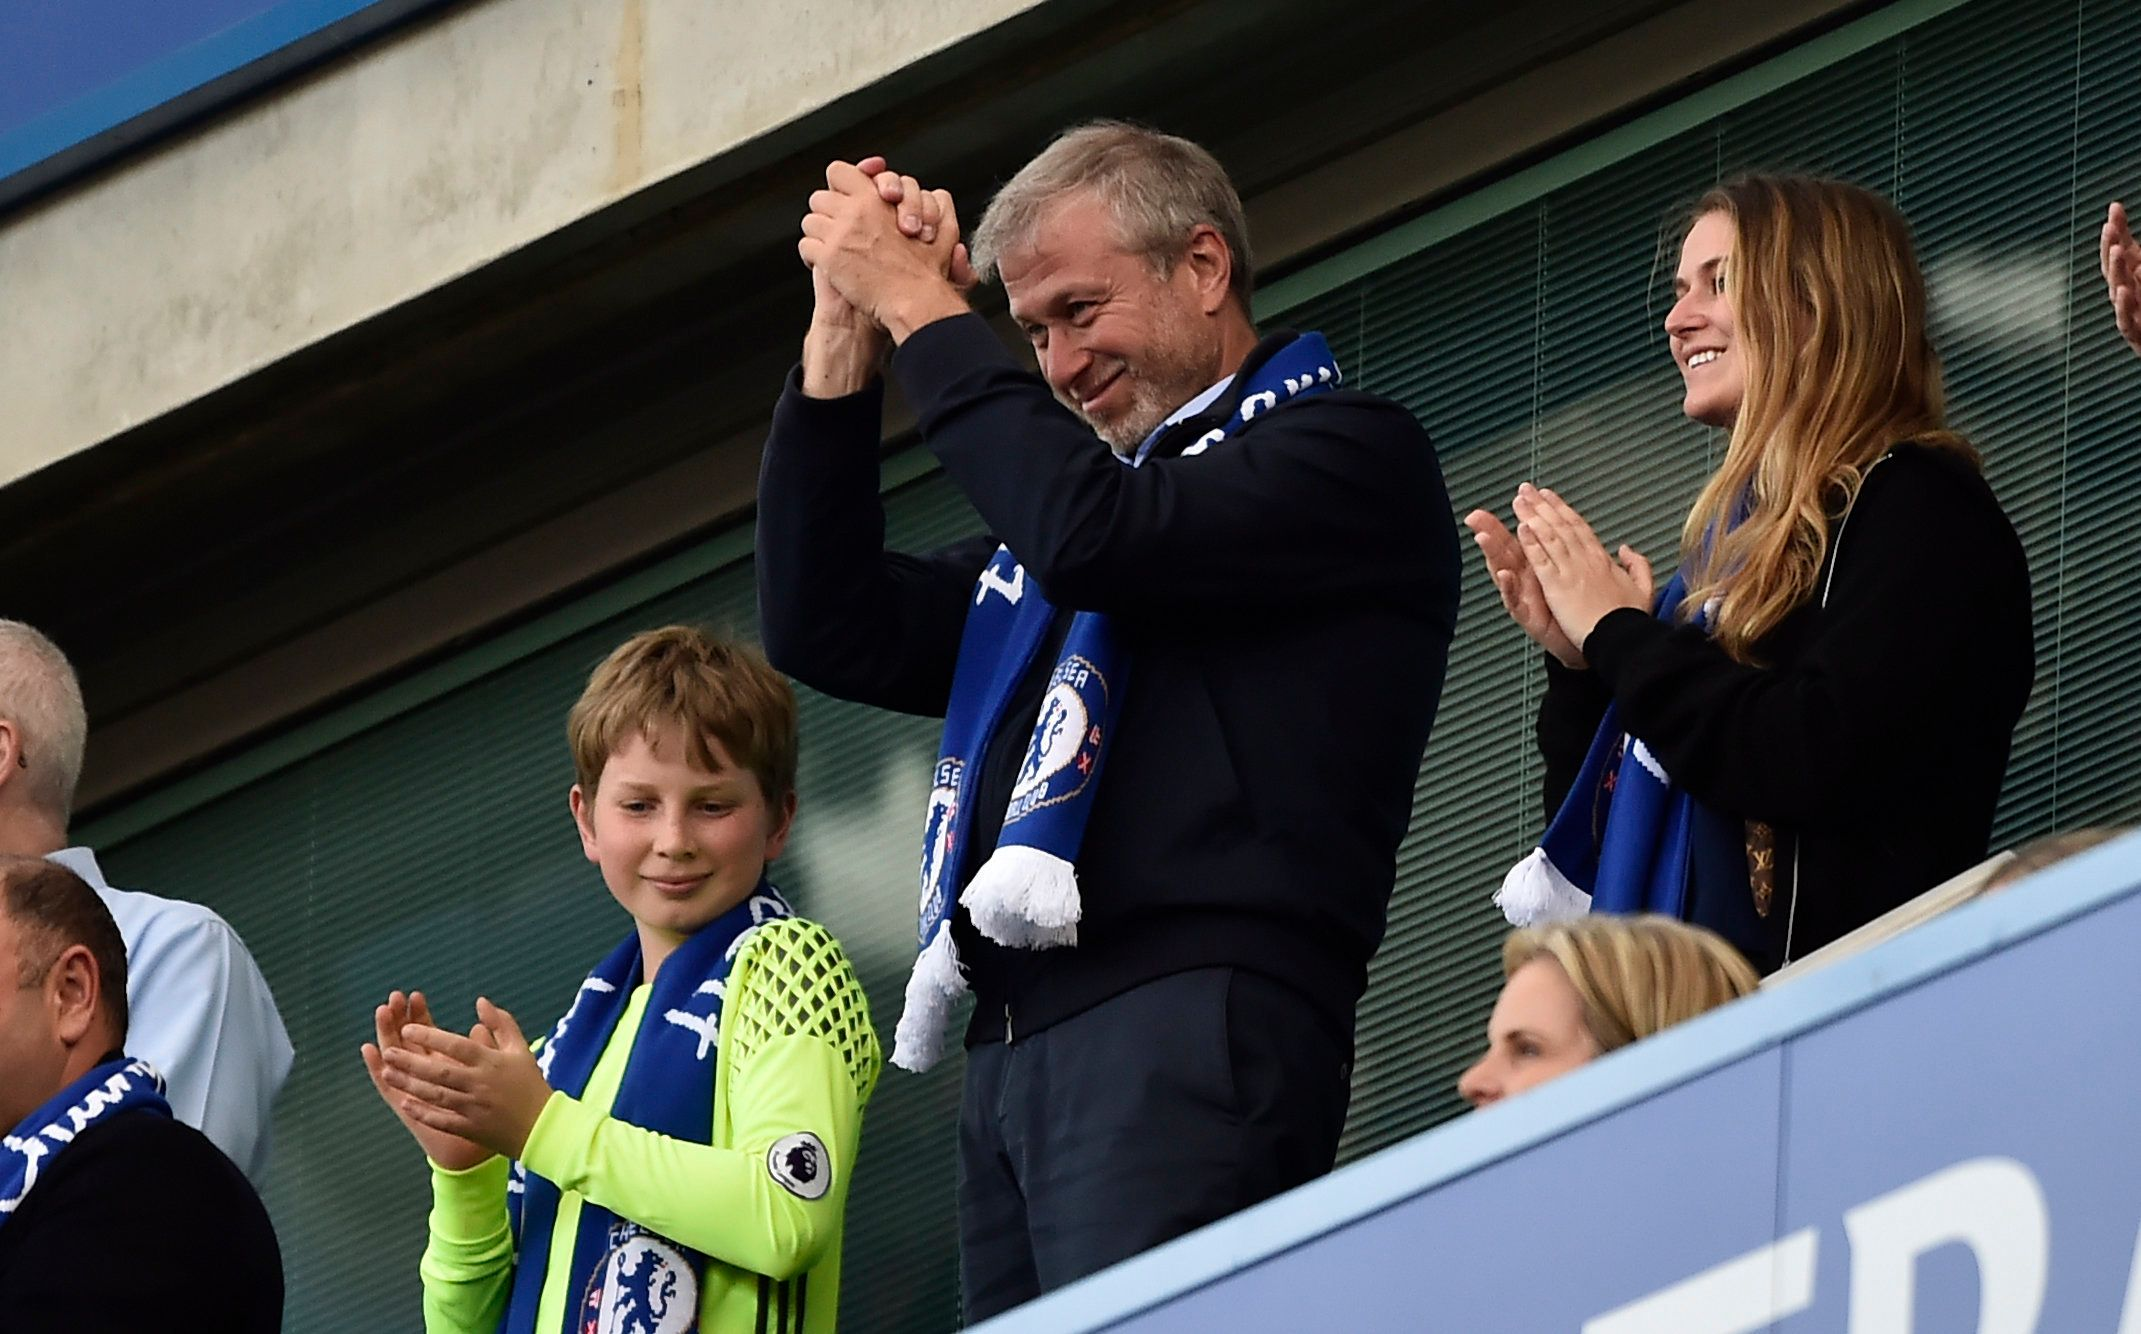 Chelsea owner Abramovich 'becomes Israeli citizen'